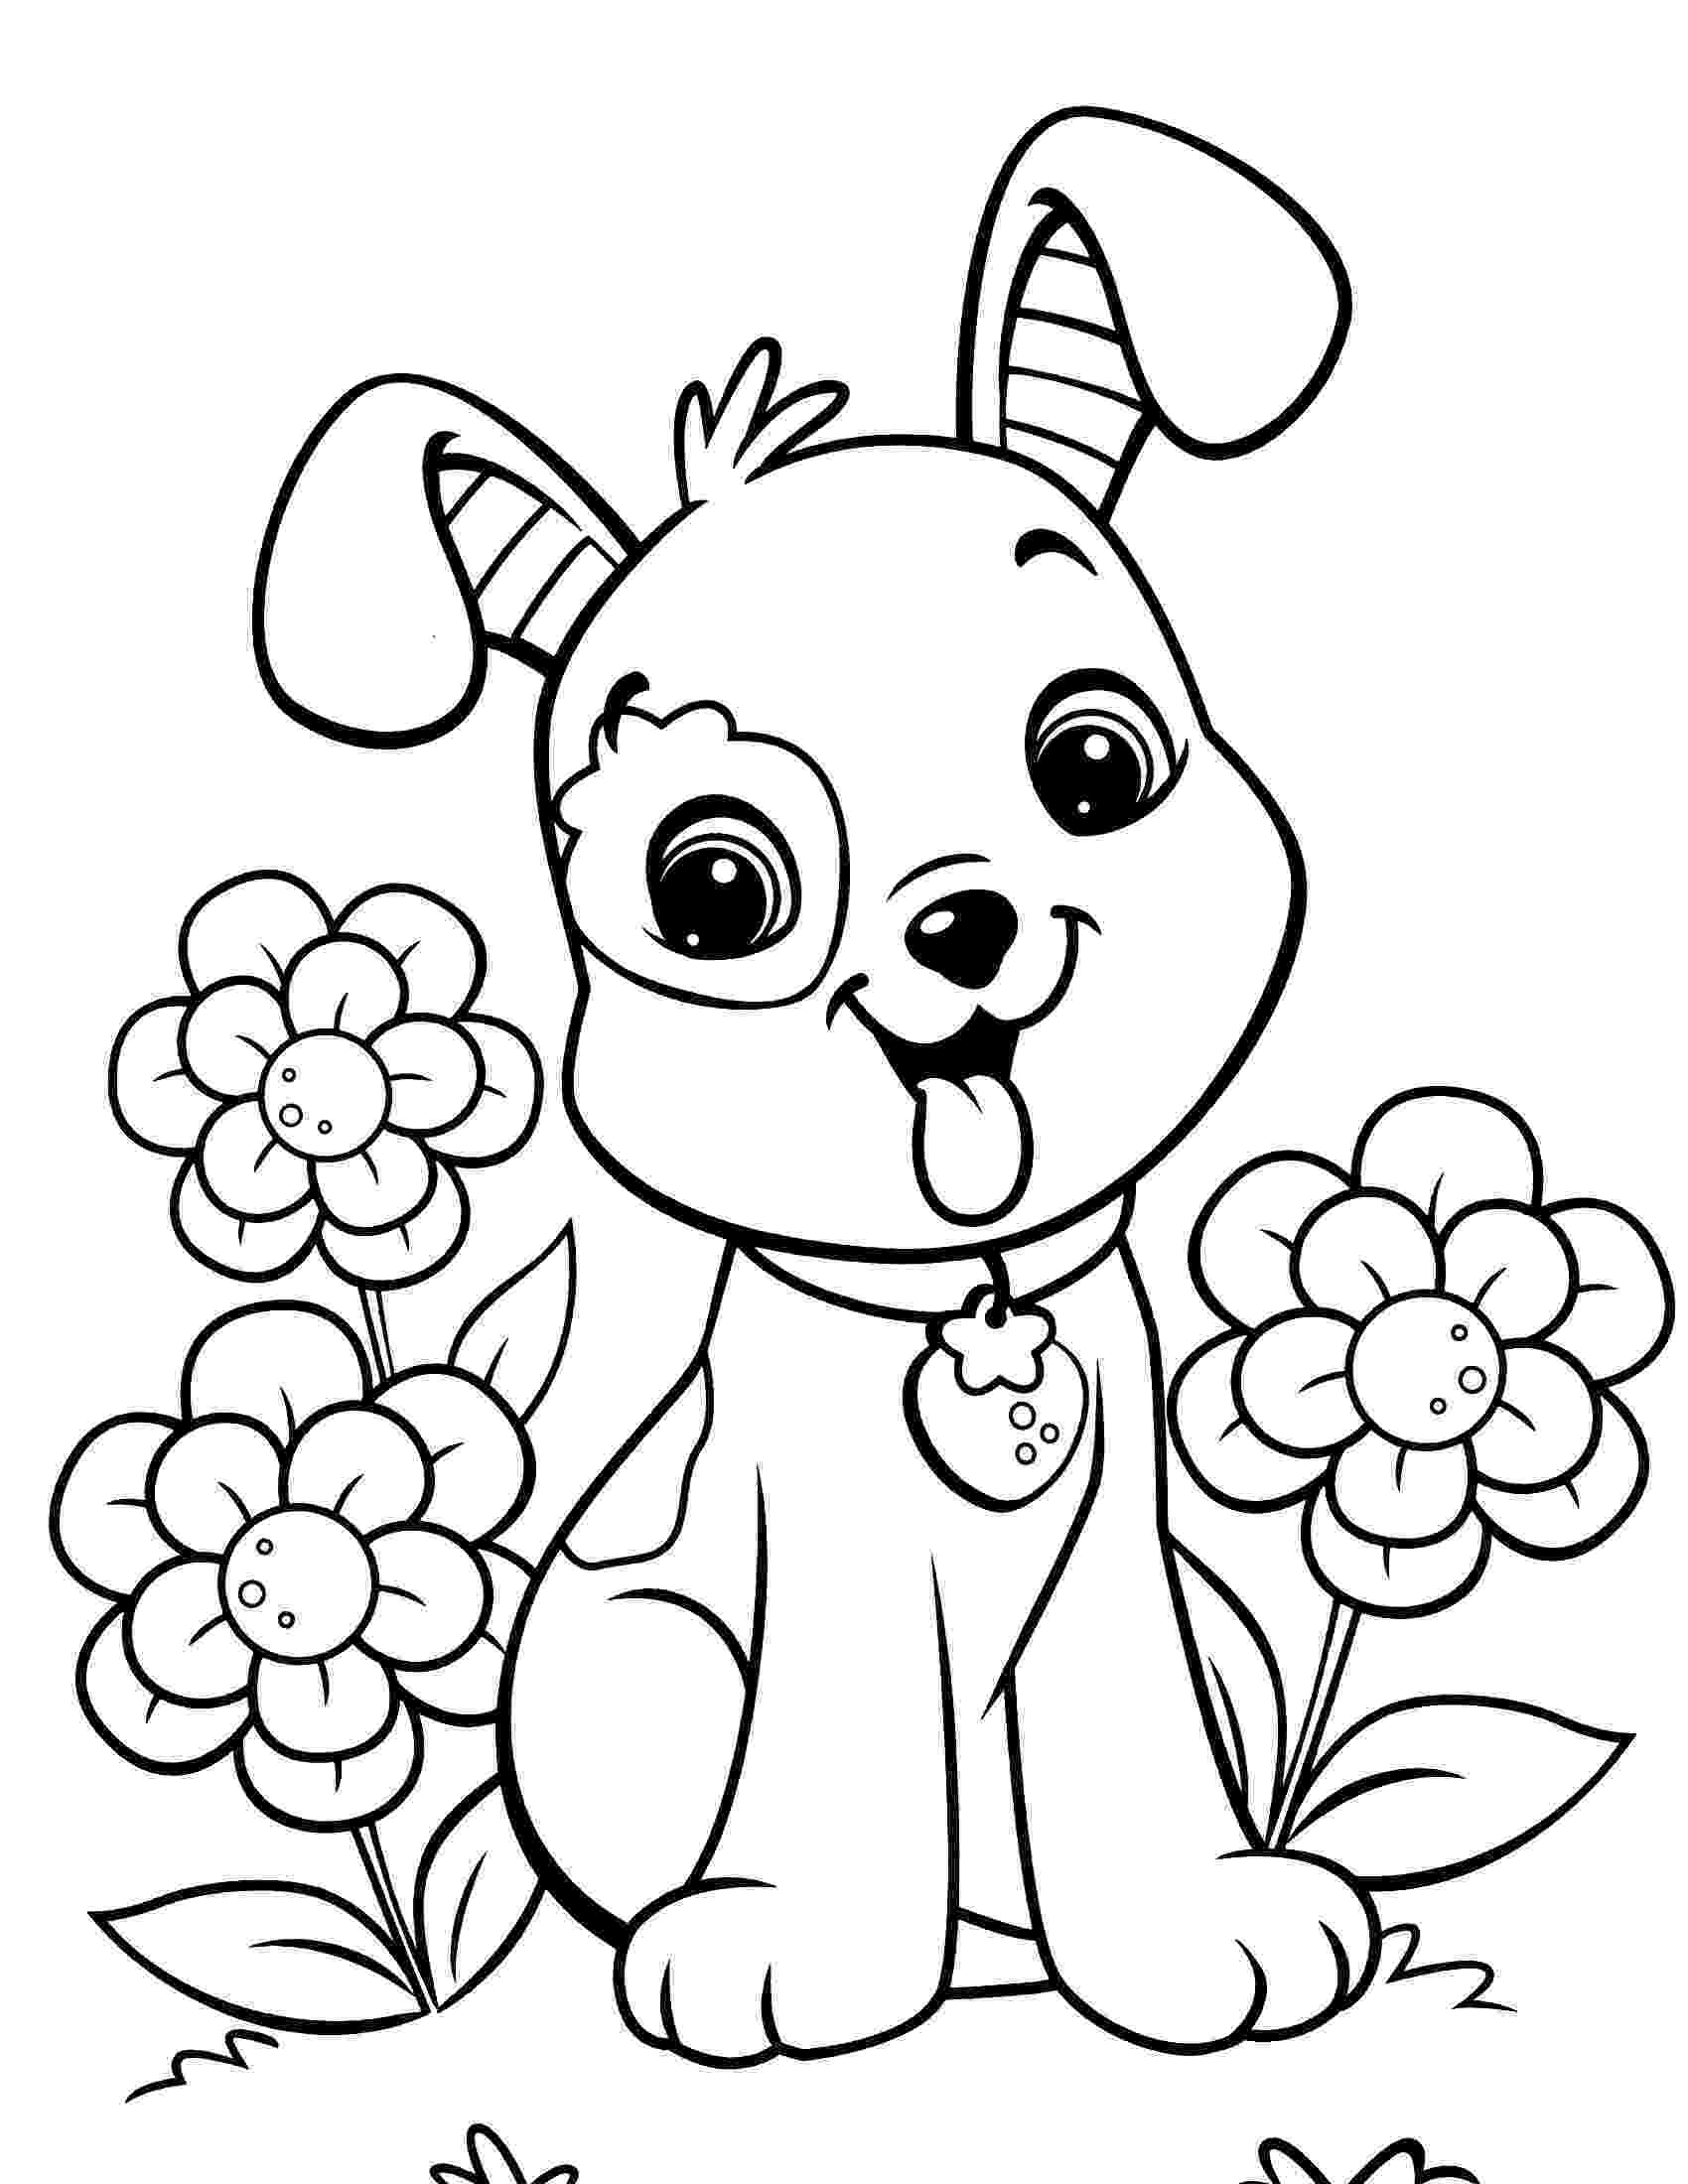 puppy coloring page cute puppy coloring pages for kids free printable page puppy coloring